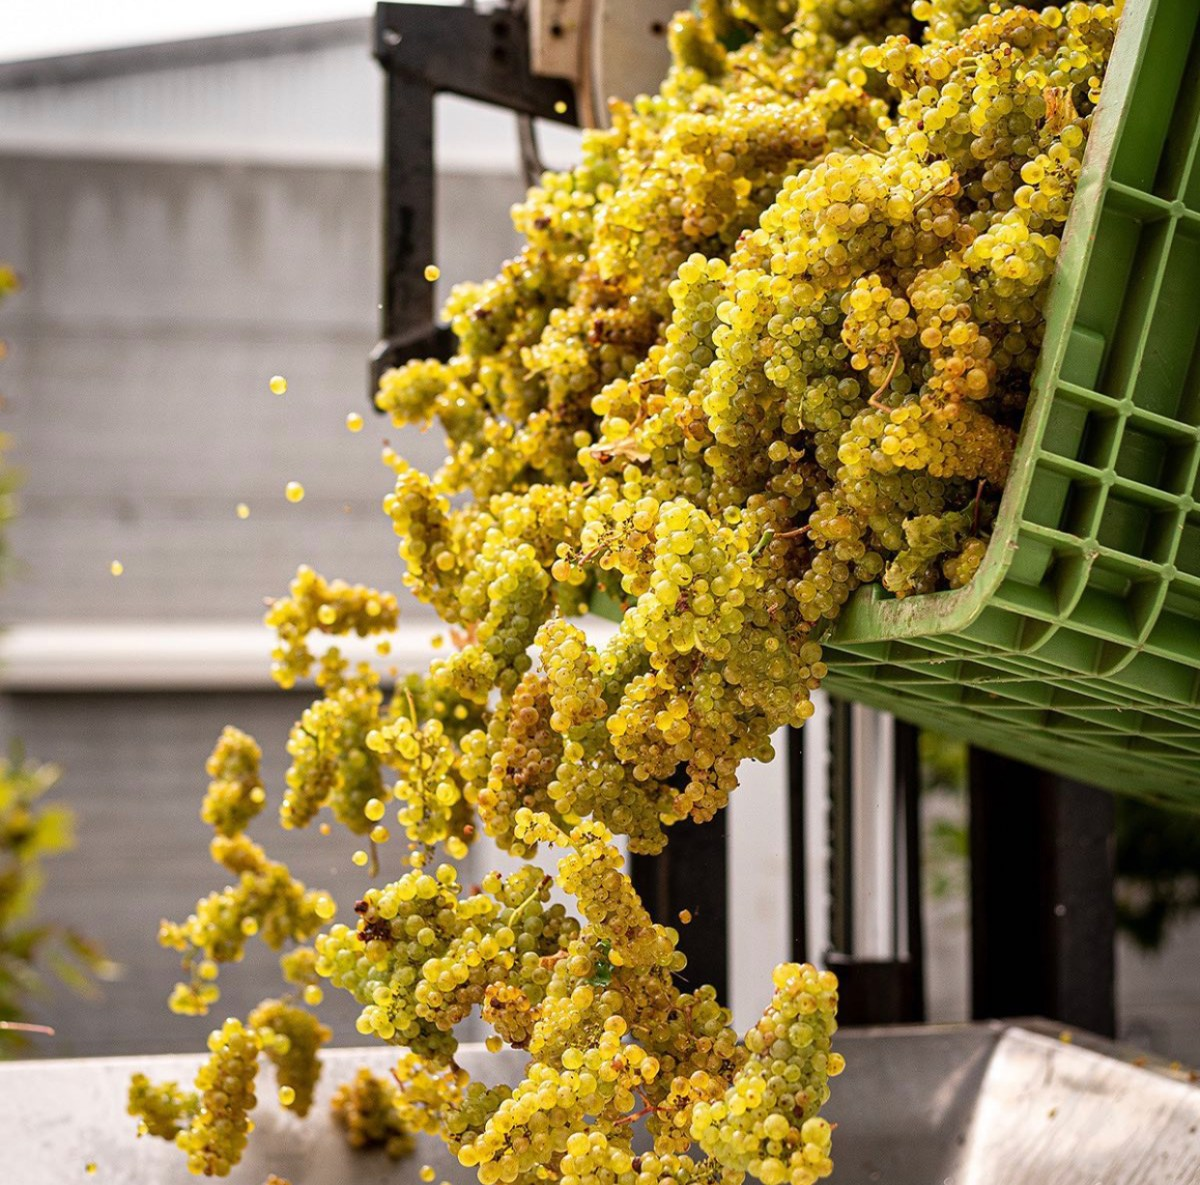 Chardonnay grapes tipped into press